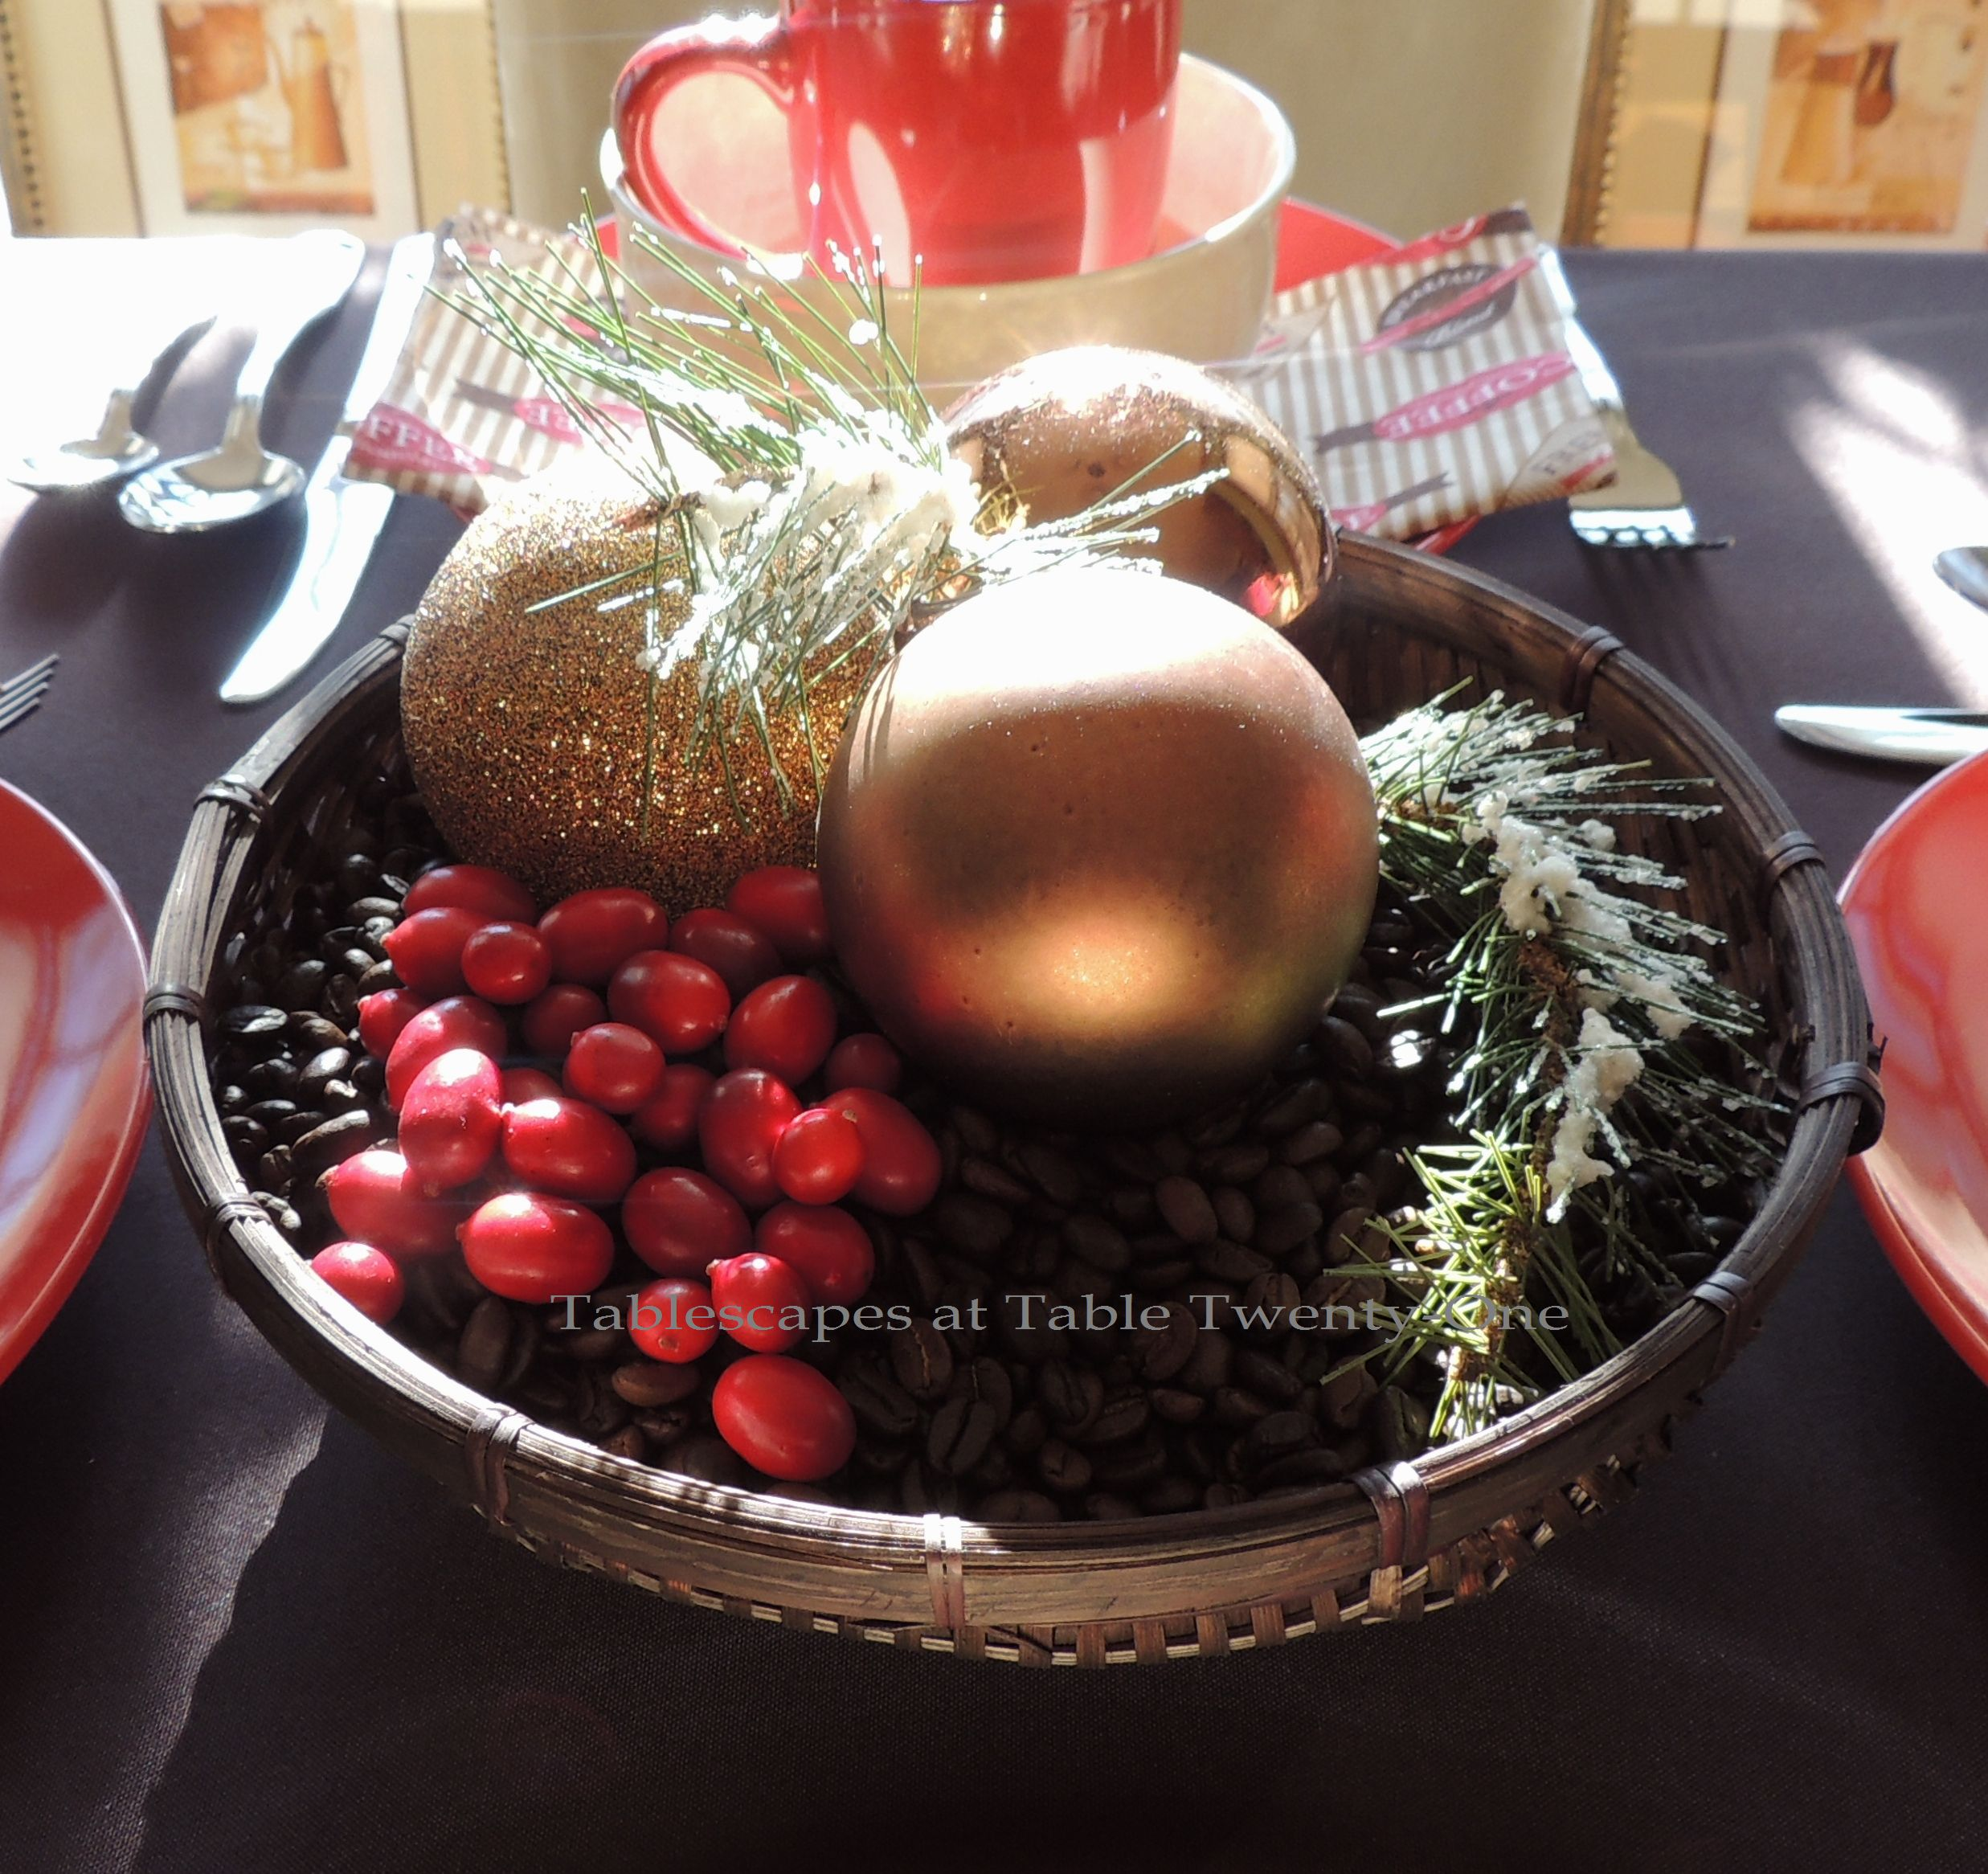 Tablescapes at Table Twenty-One, Christmas Coffee: Coffee bean/cranberry enterpiece